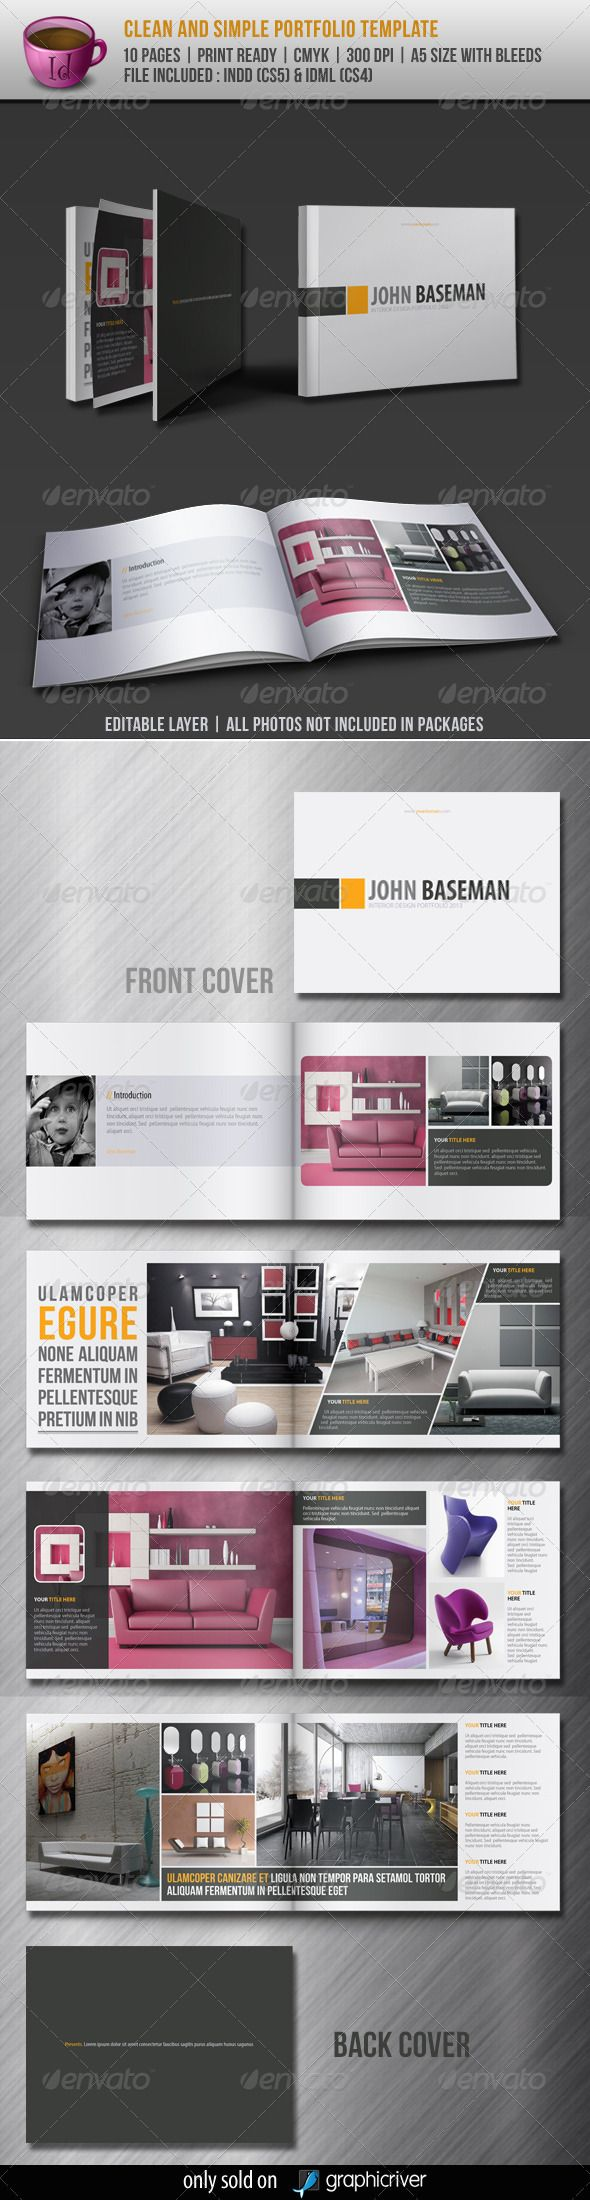 Clean And Simple Portfolio Template - GraphicRiver Item for Sale